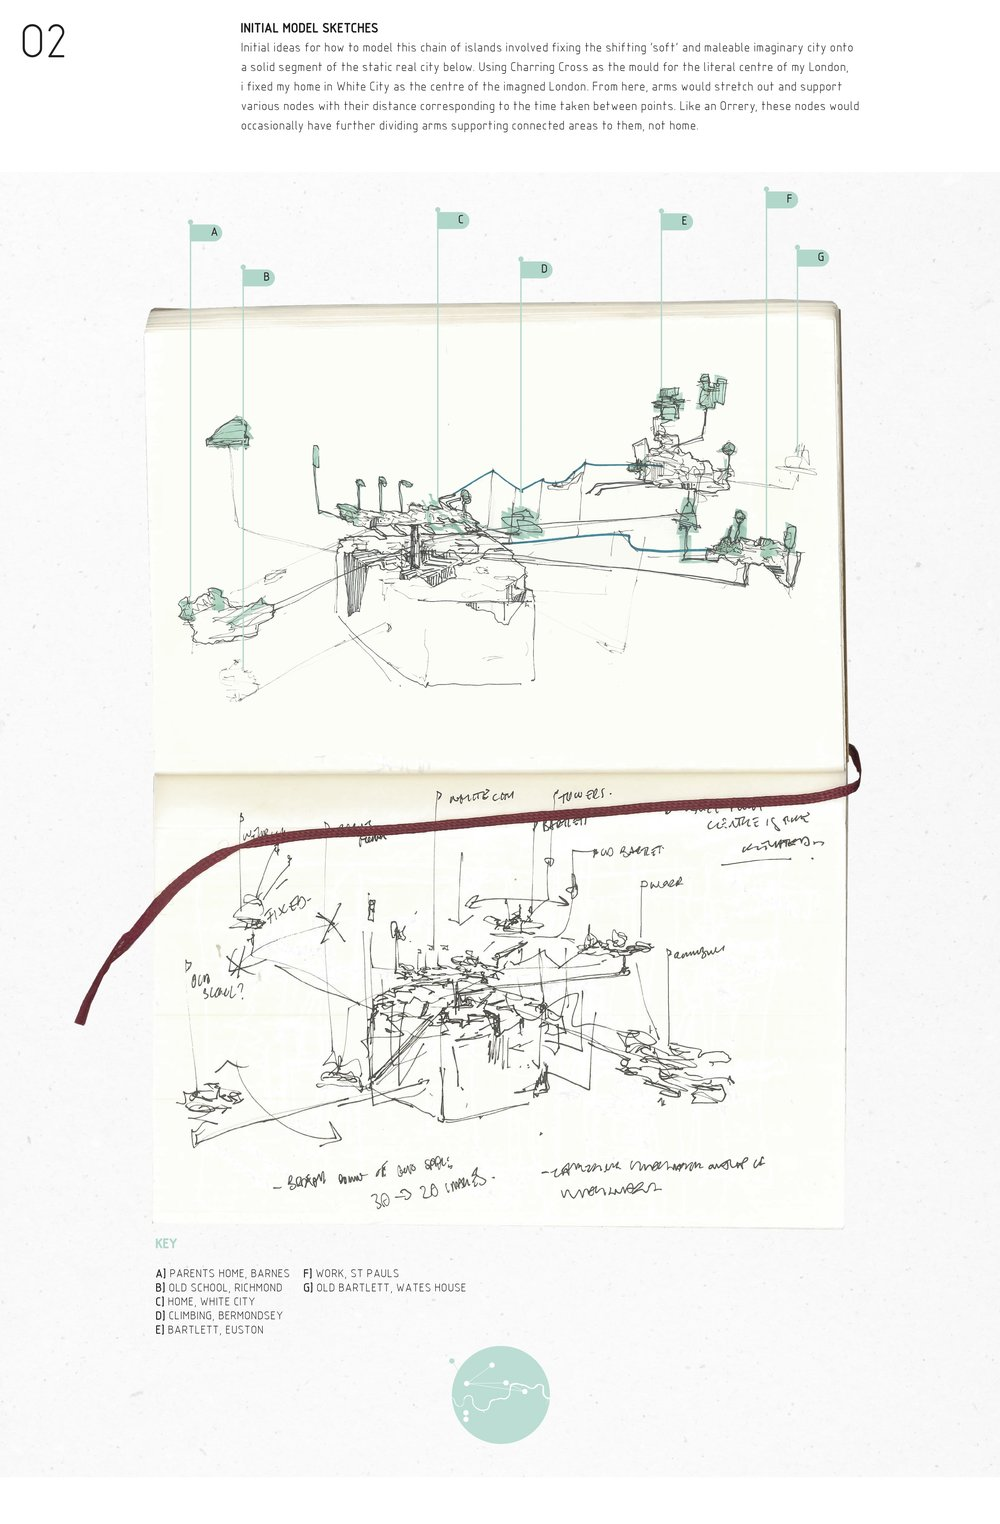 p1-overall-model-part-sketch-min.jpg